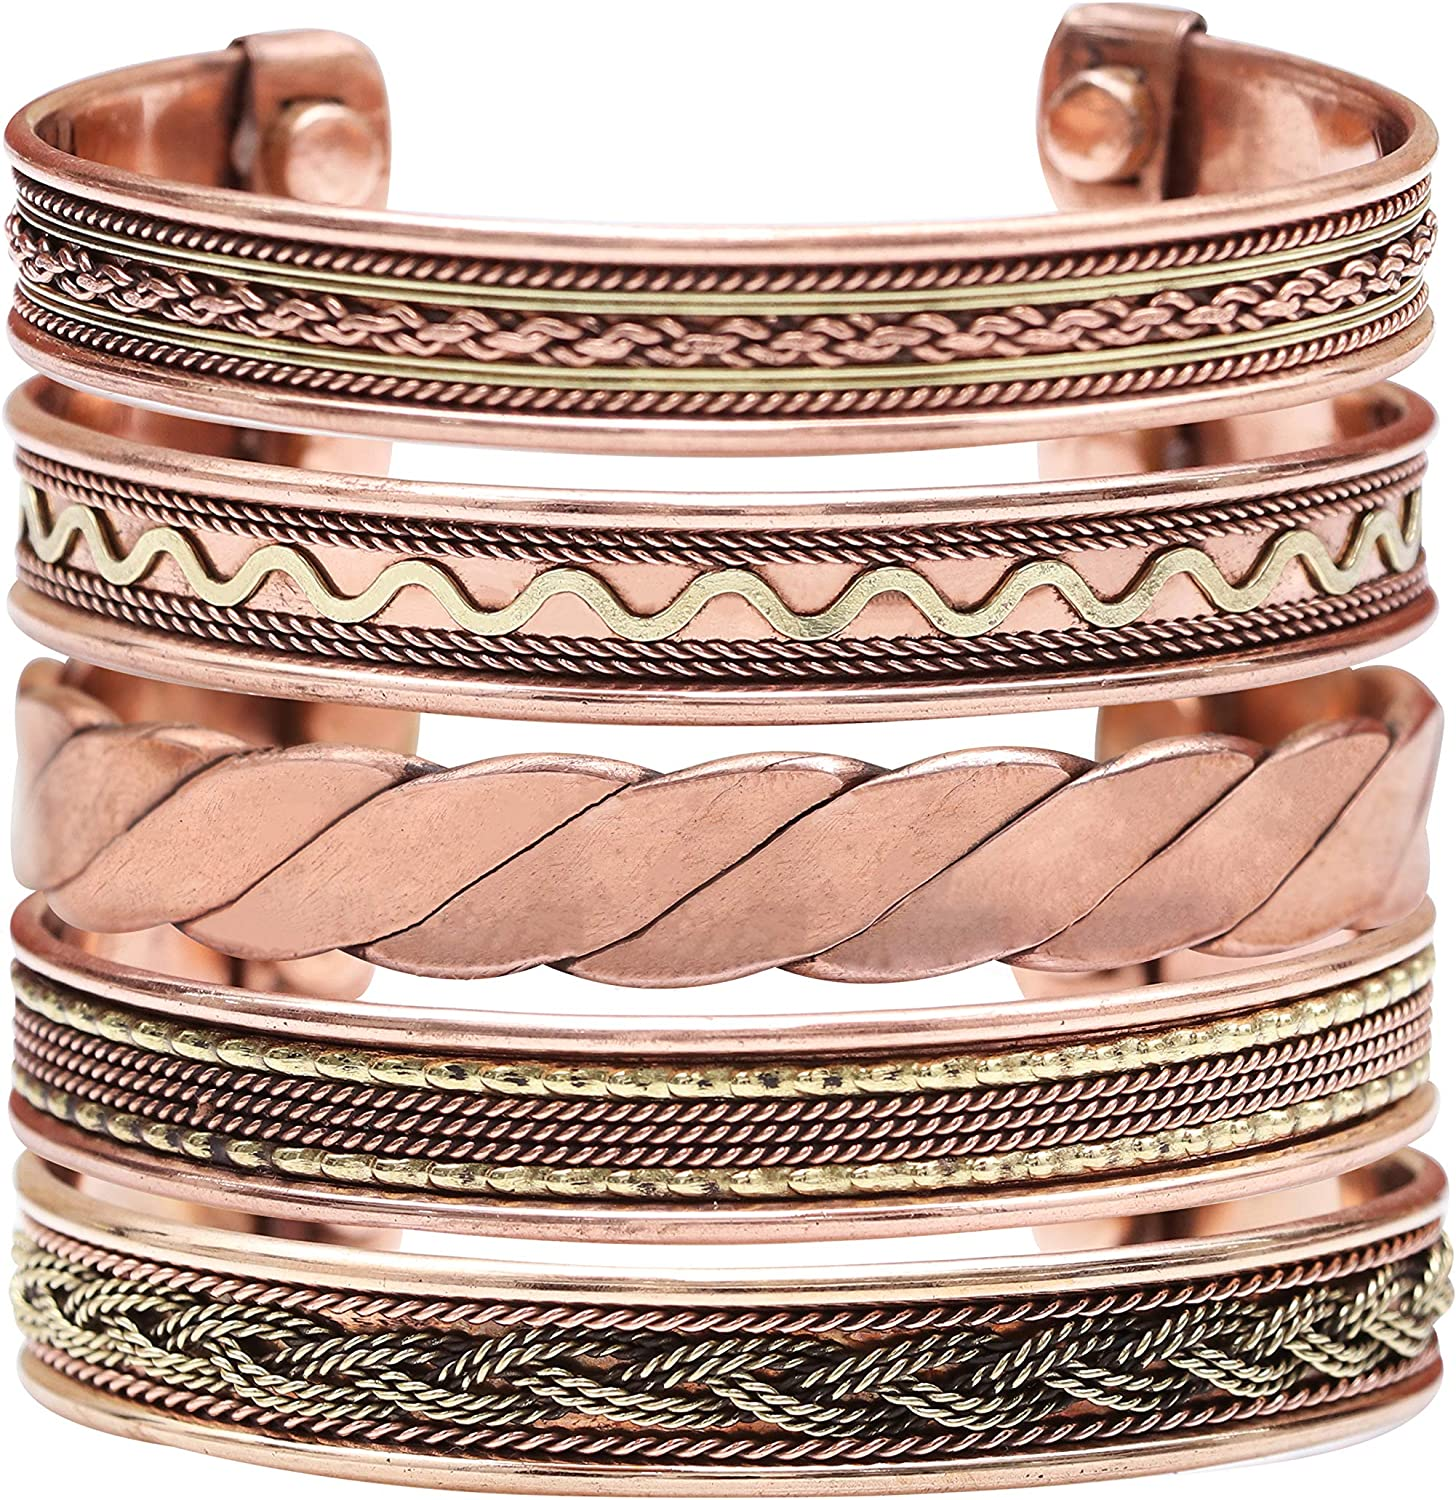 Crocon Exclusive Tibetan Copper Adjustable Magnetic Bangle Bracelets | Indian pattern | Spiritual | Meditation | Gorgeous Collection | Ideal Gift | Yoga Jewelry | Unisex